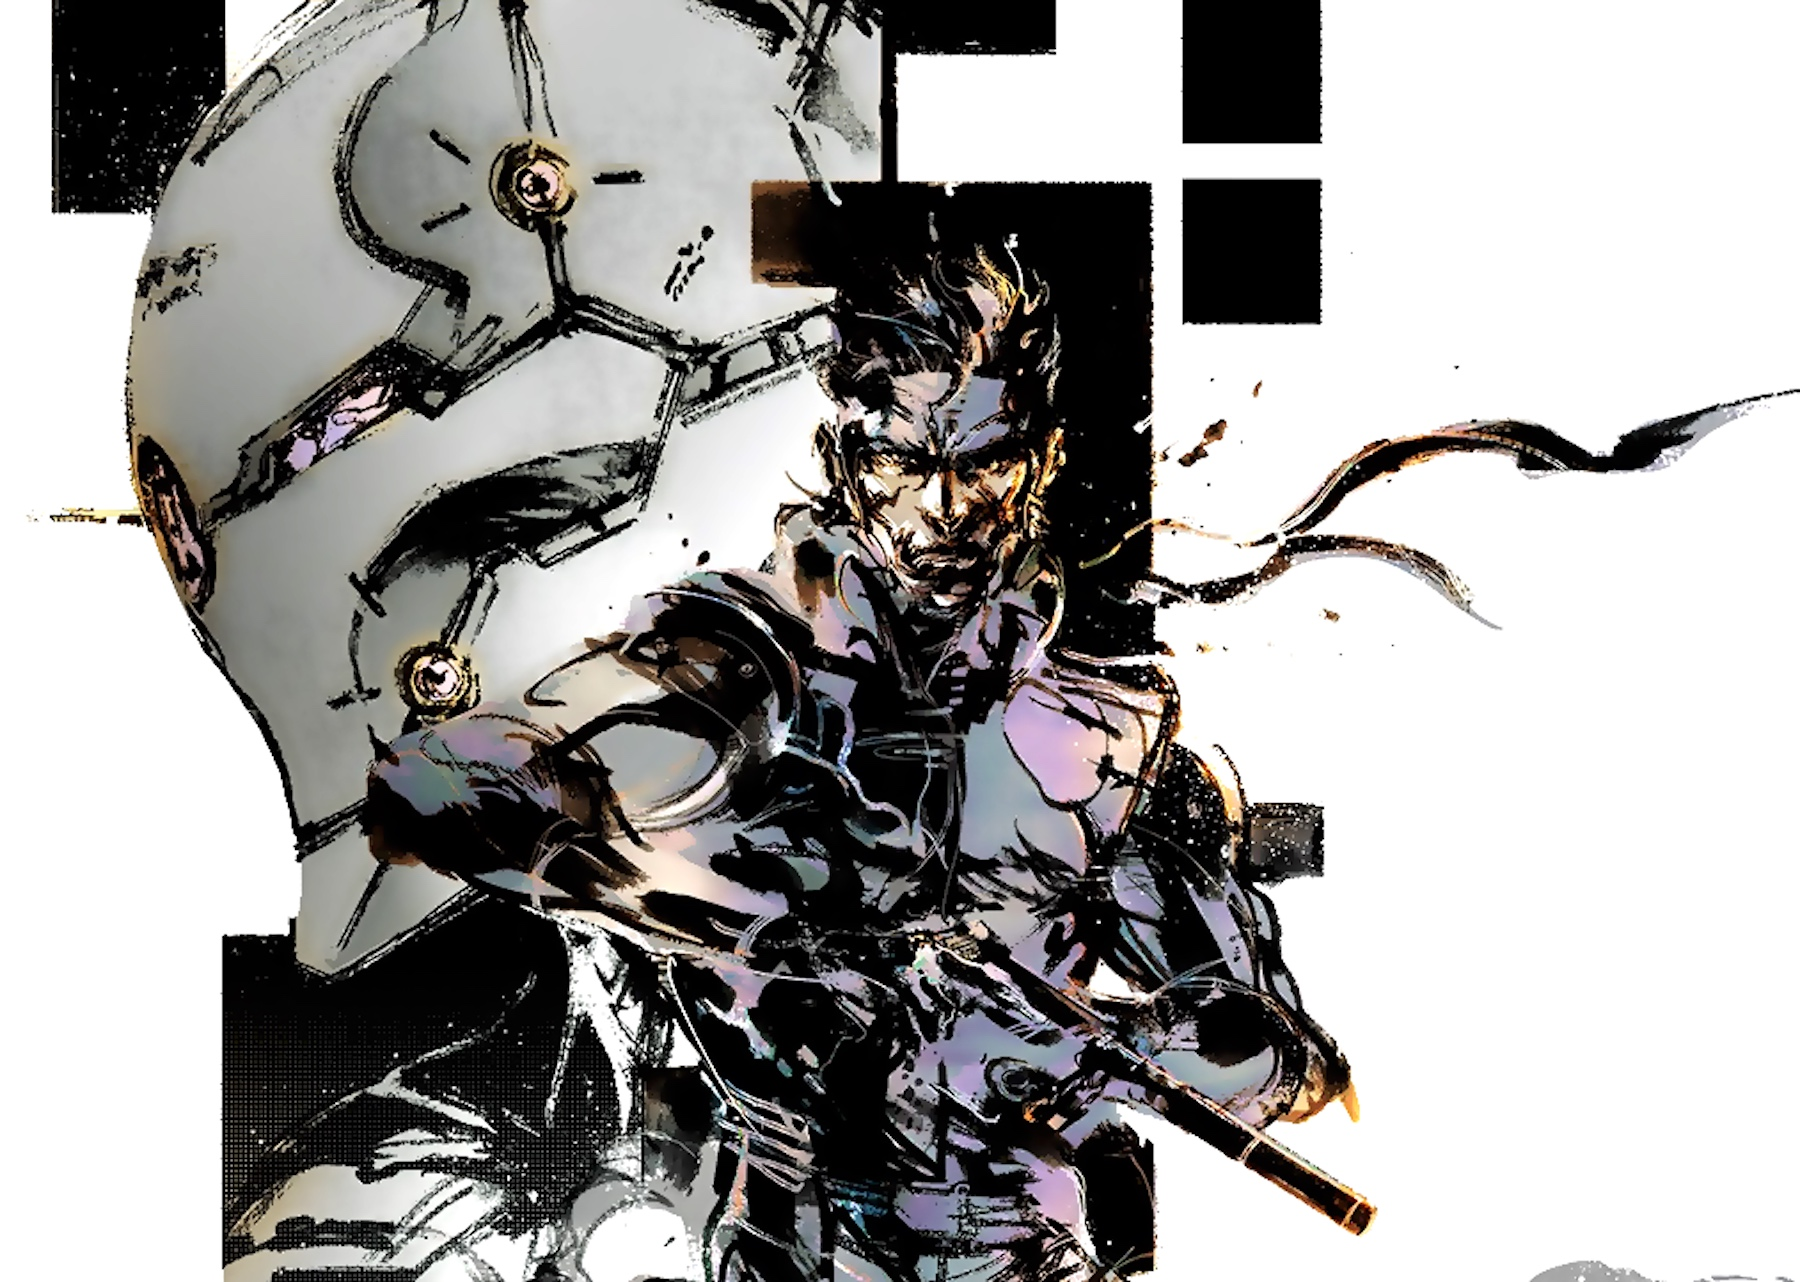 For Metal Gear Solid: The Board Game, IDW tapped the perfect designer